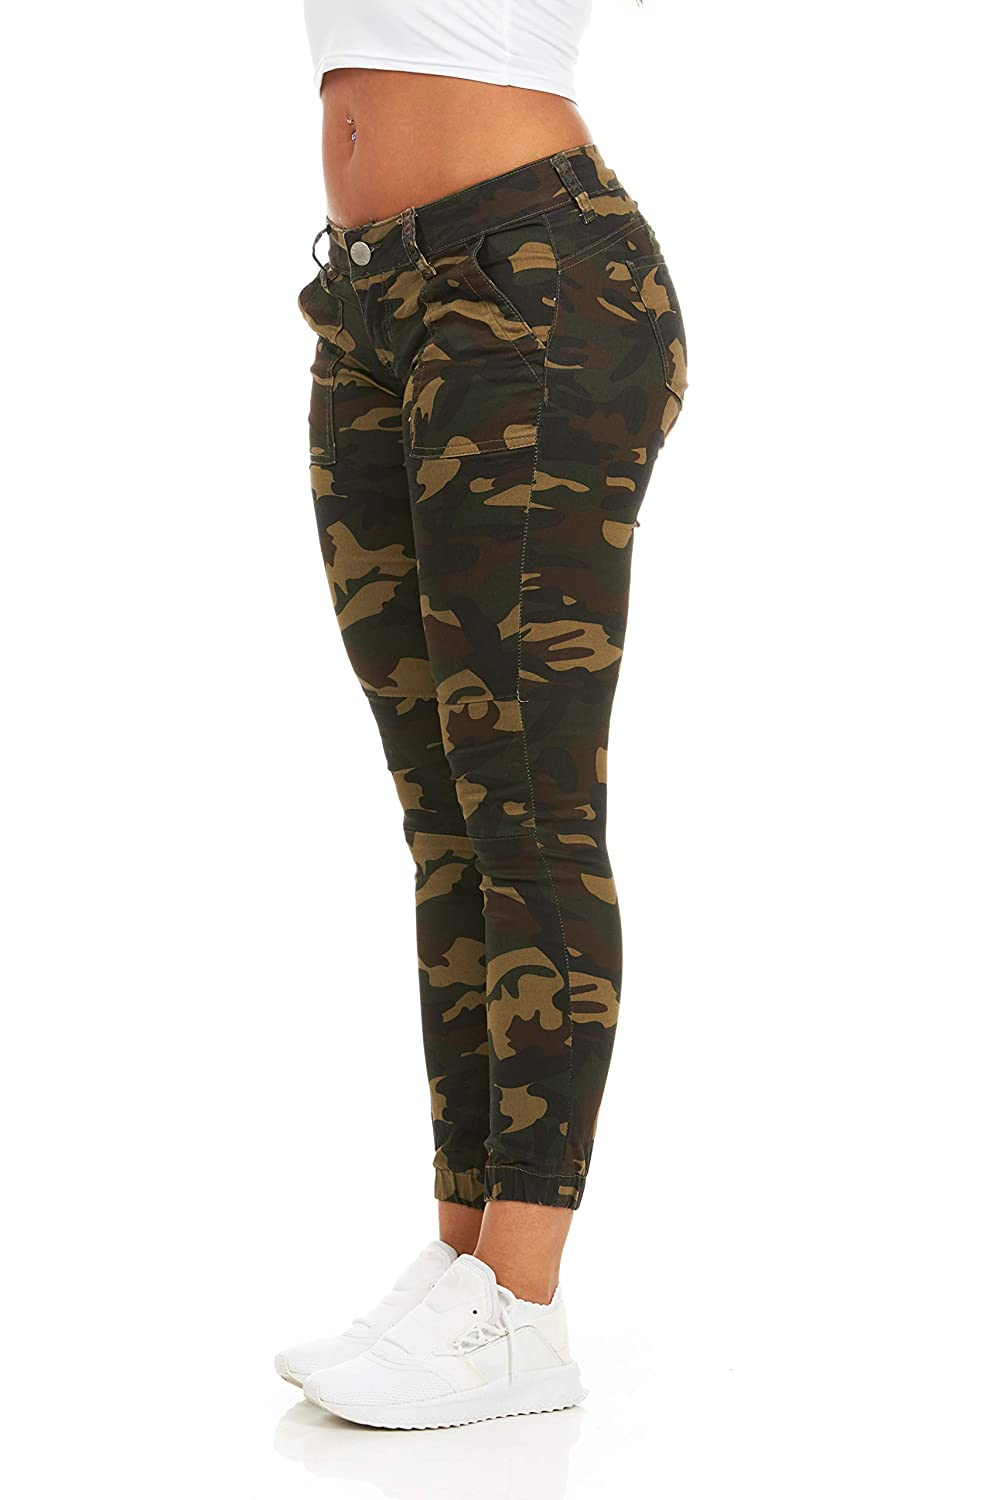 e97827043d8 Cover Girl Women s Camo Print Skinny Jeans Joggers Cargo Lace Leg at Amazon  Women s Jeans store